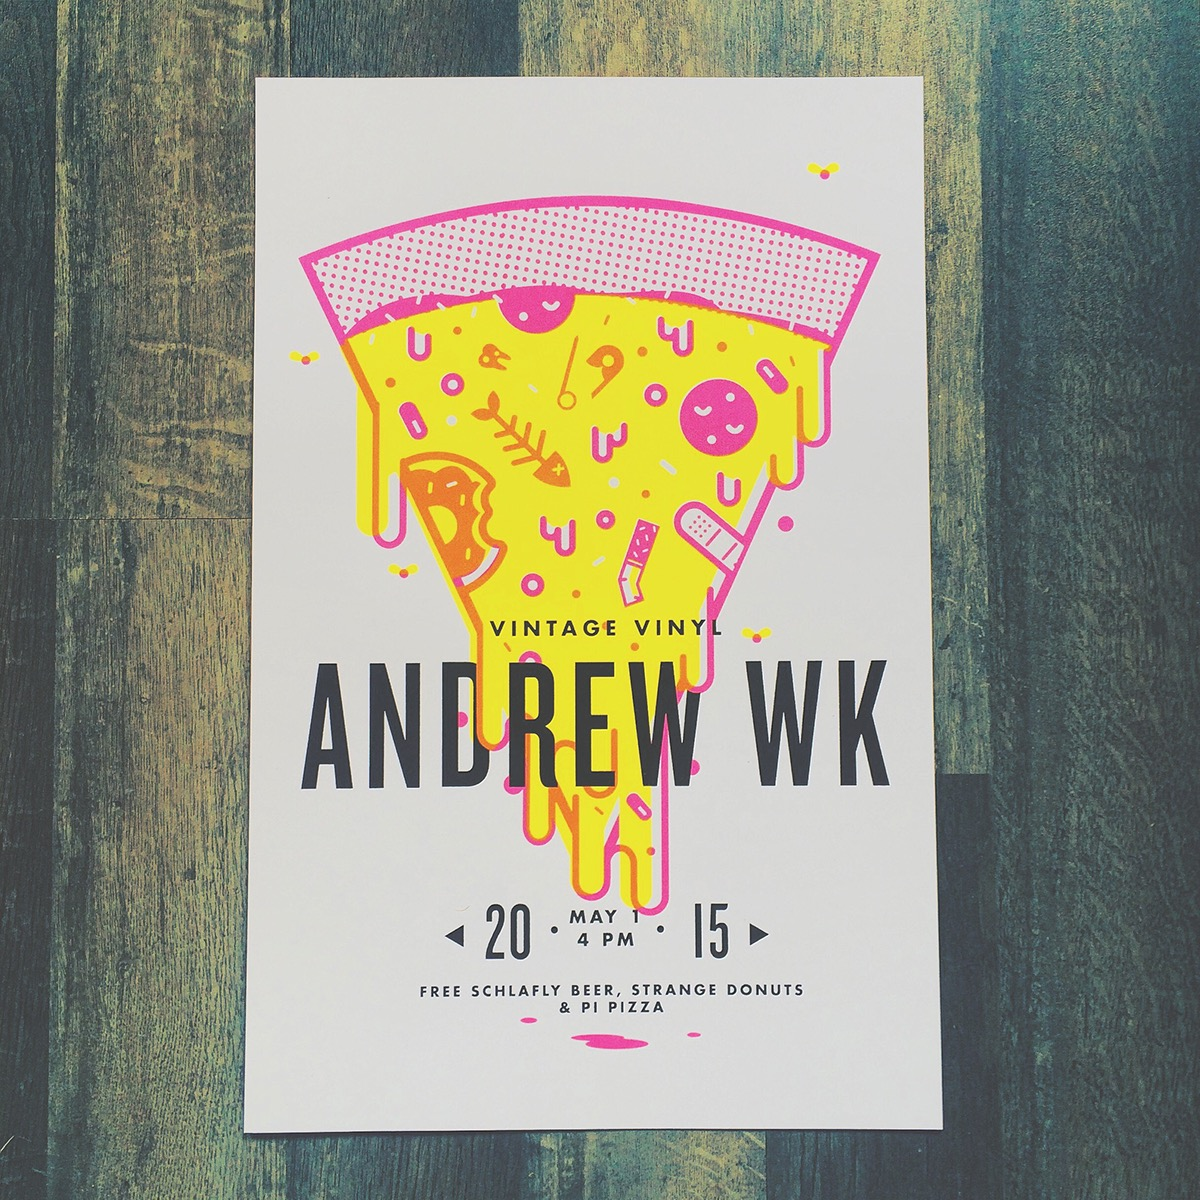 3 color poster designs - 11x17 Poster For Andrew Wk In Store Performance At Vintage Vinyl 3 Color Screen Print Printing Done By Daniel Frumhoff